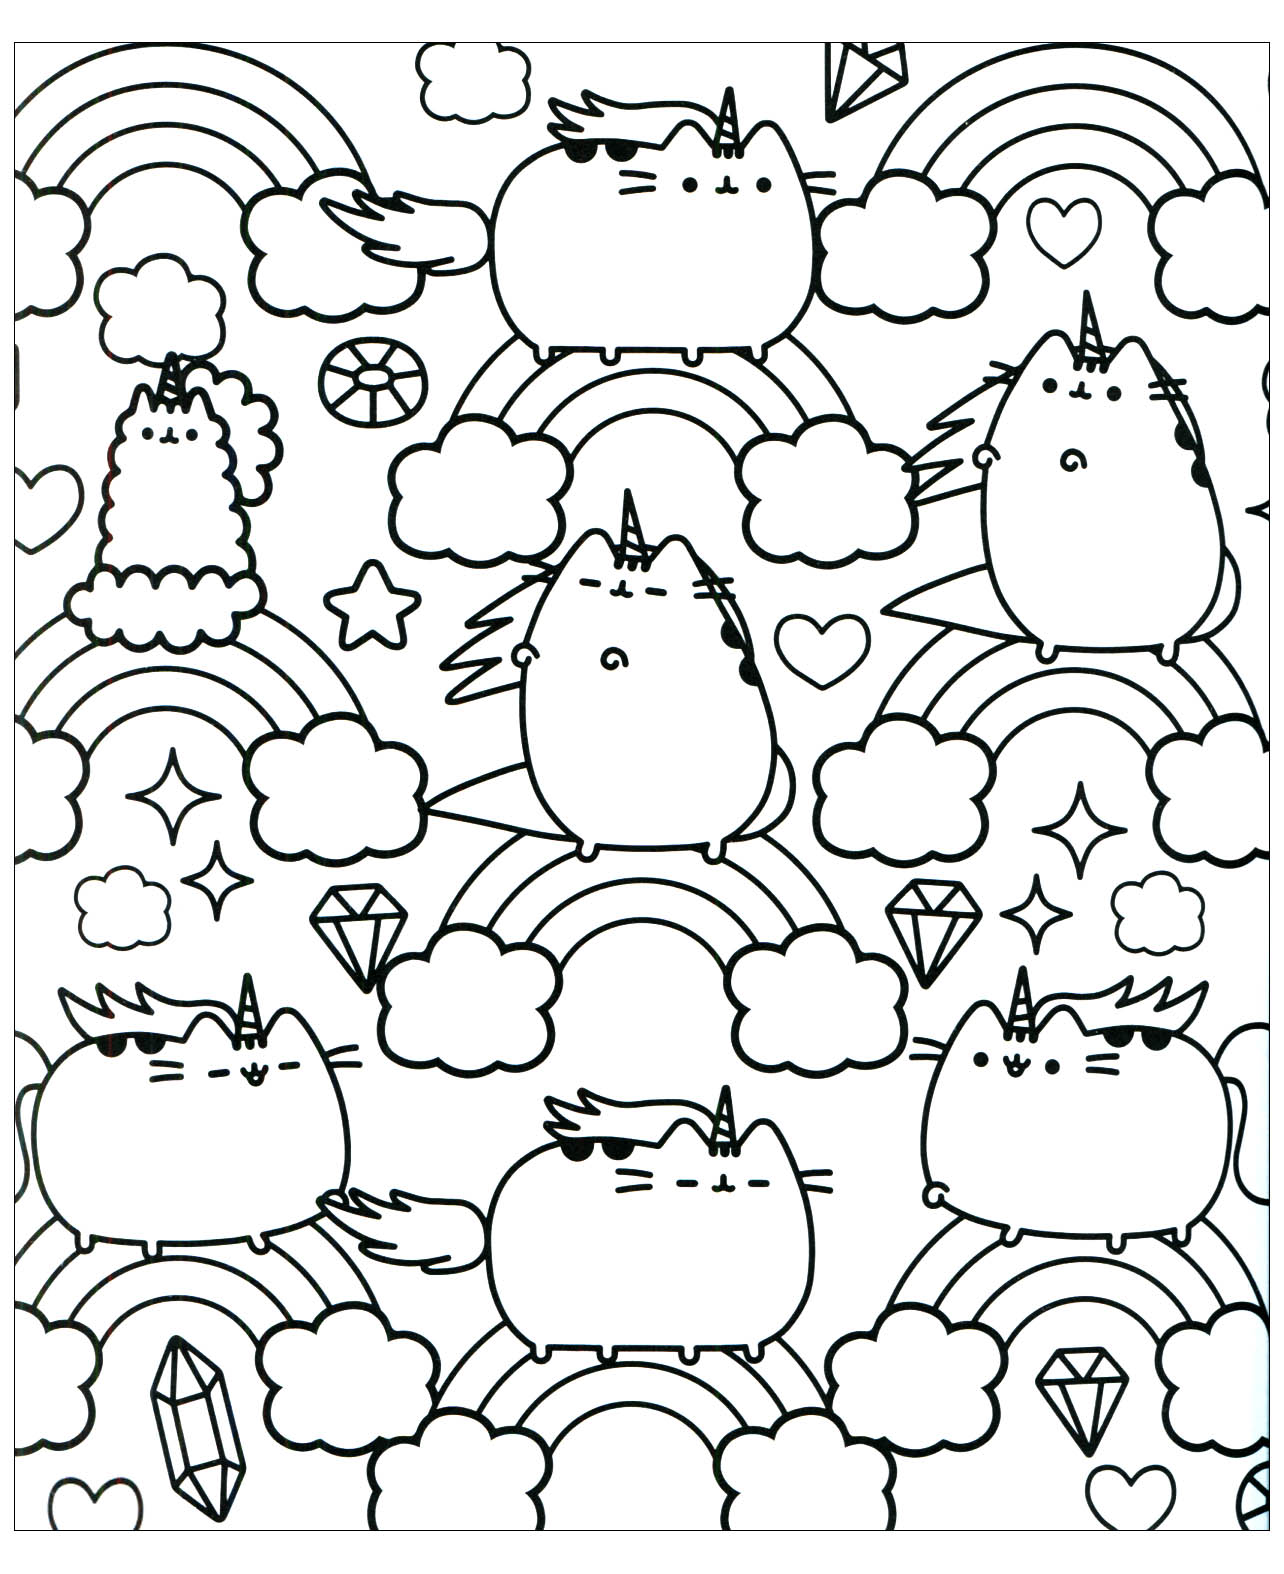 Pusheen the cat & rainbows ! When doodle meets kawaii style ...